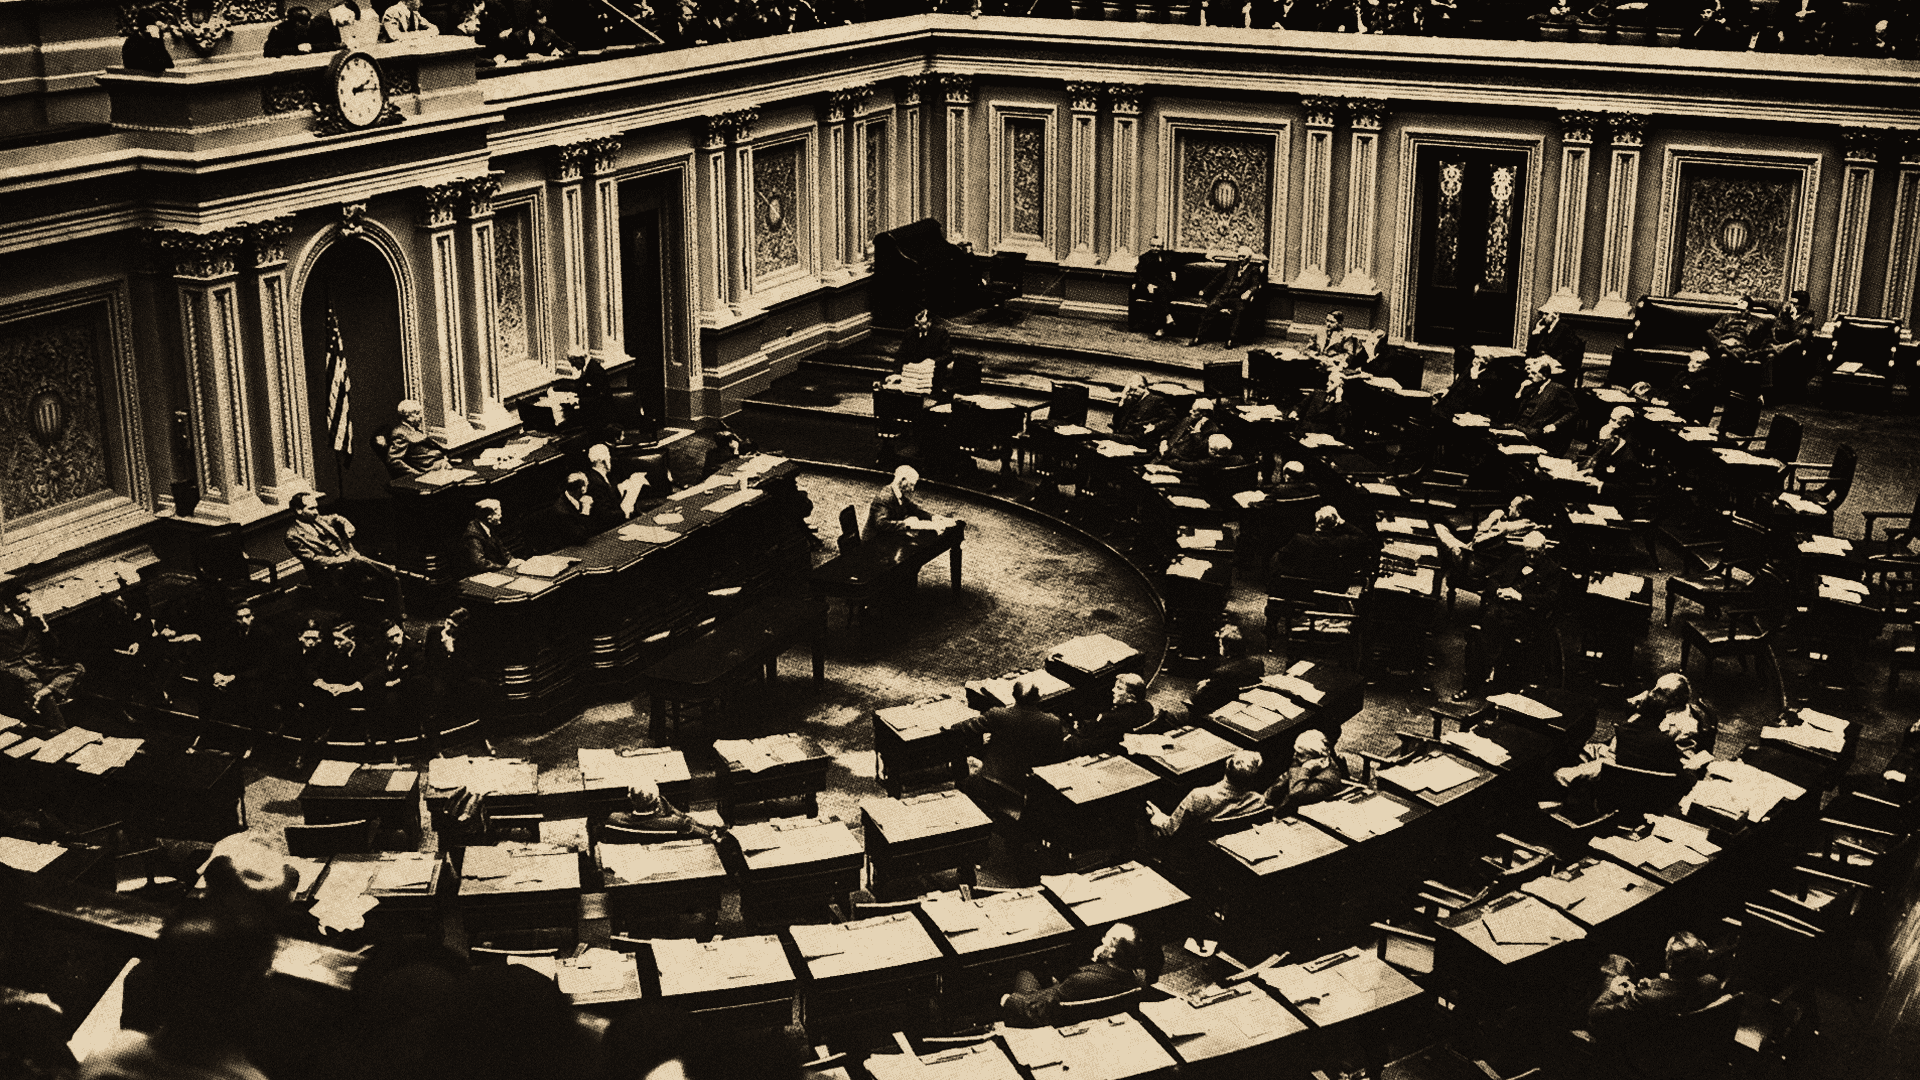 U.S. Senate chamber while in session ca. January 1939.